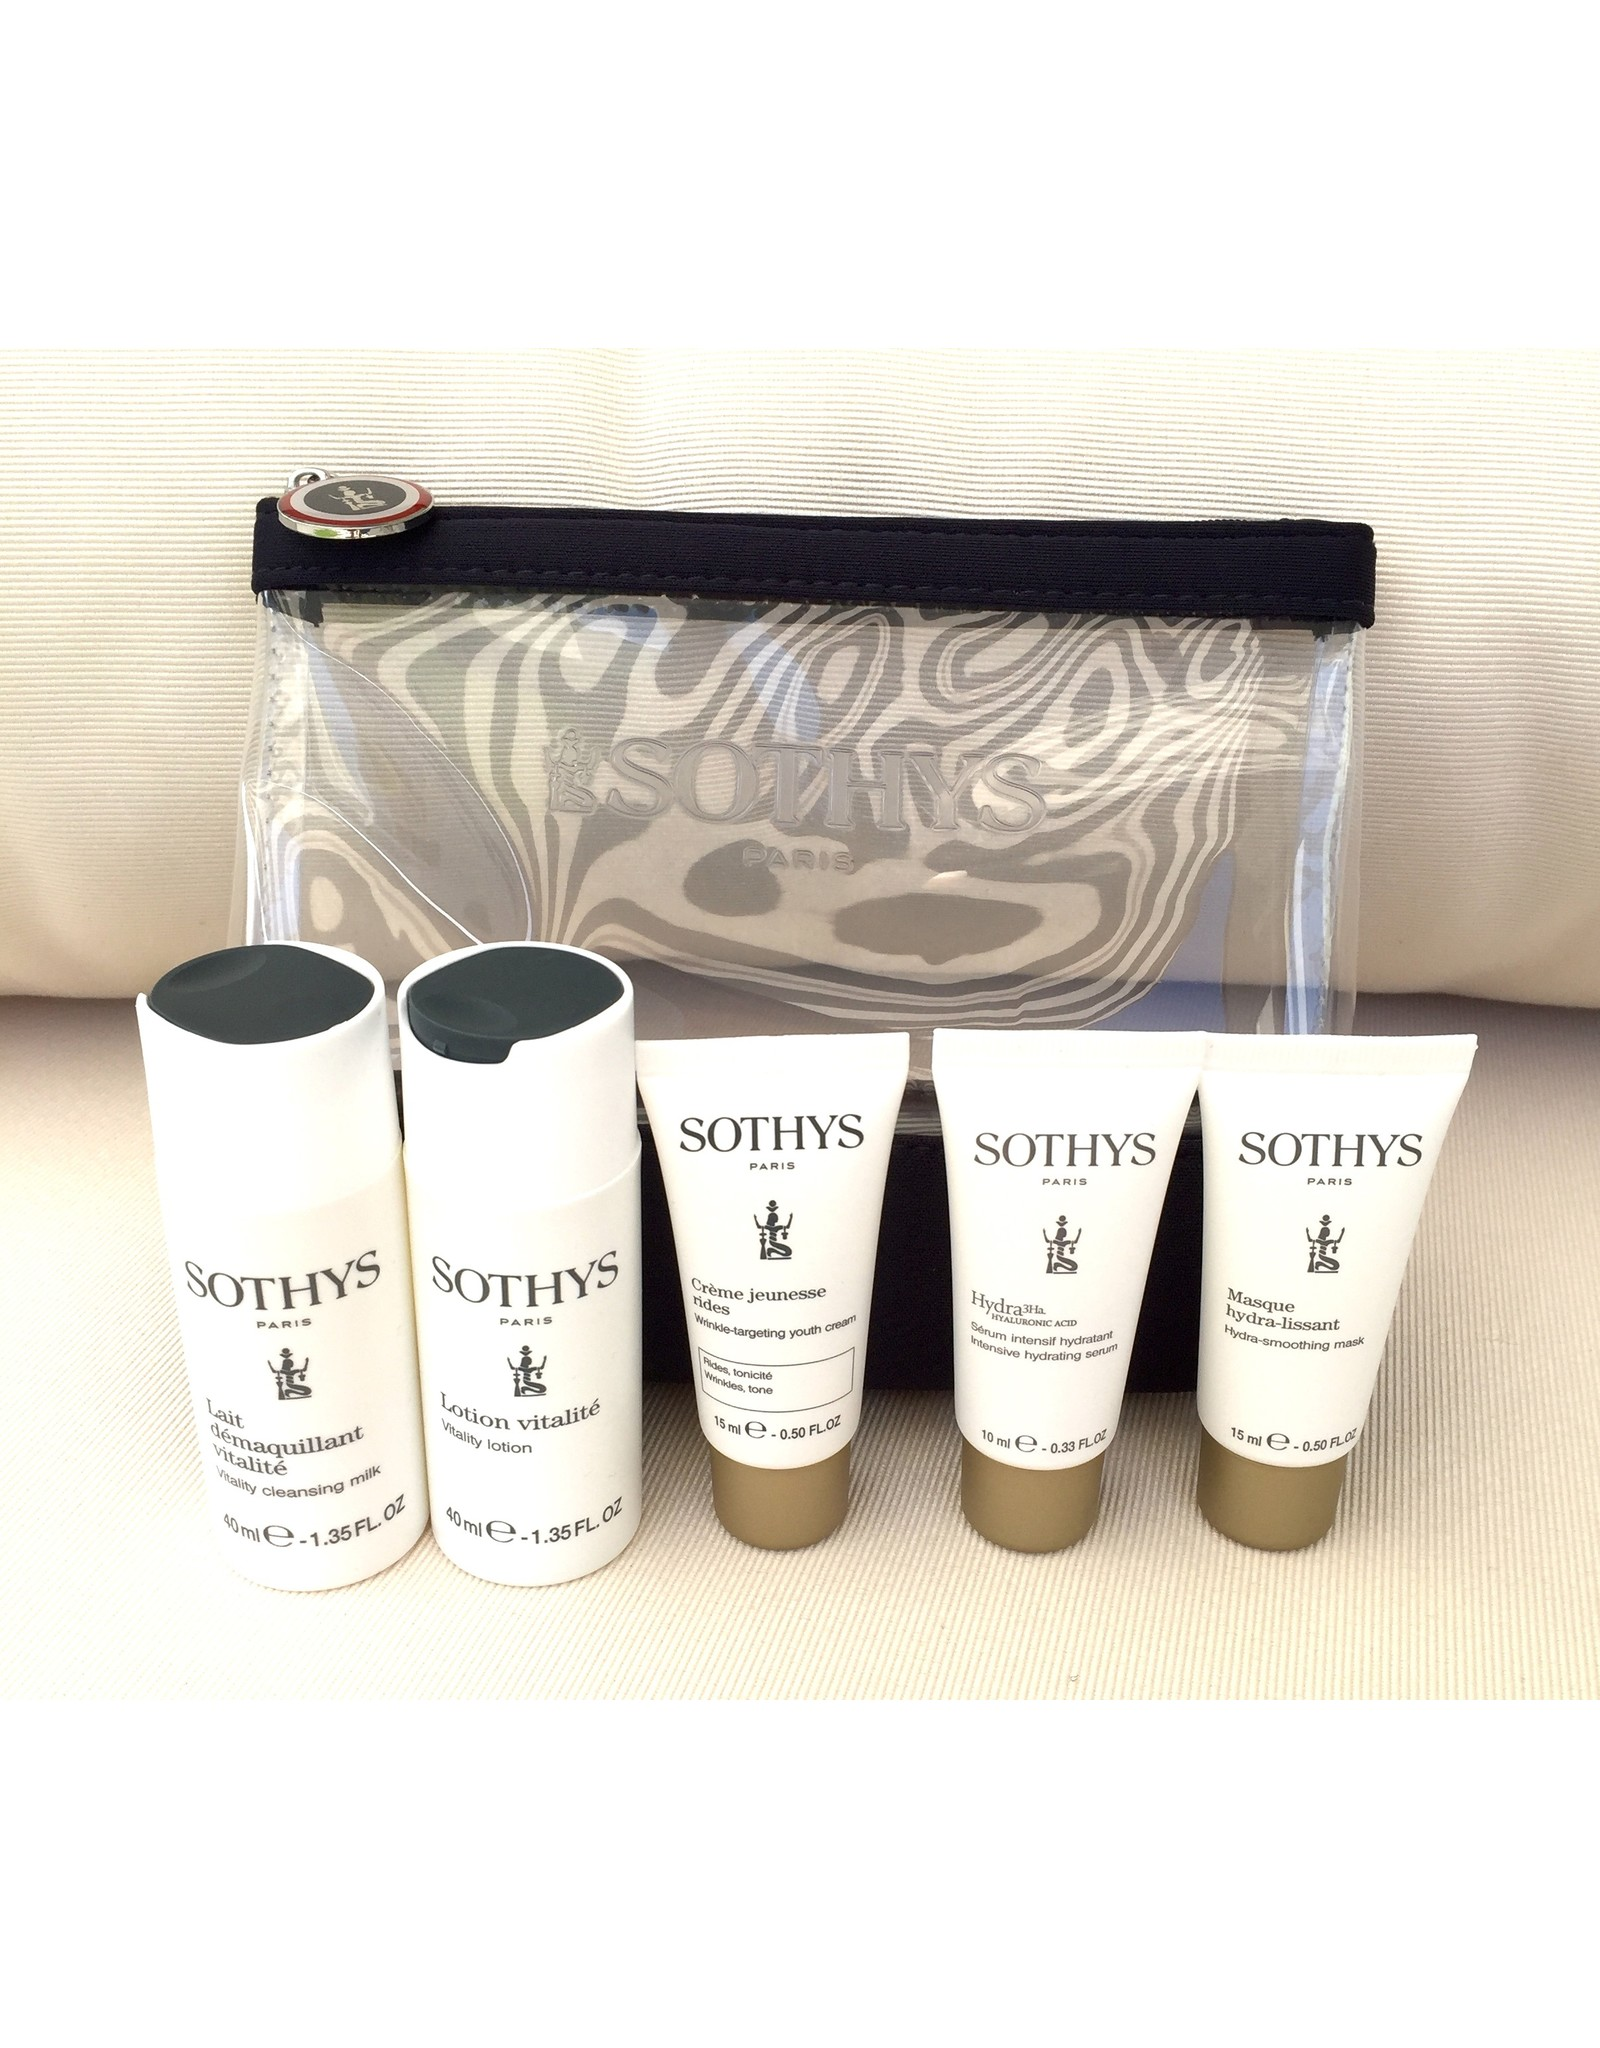 SOTHYS Traveler kit - Cleansing and care